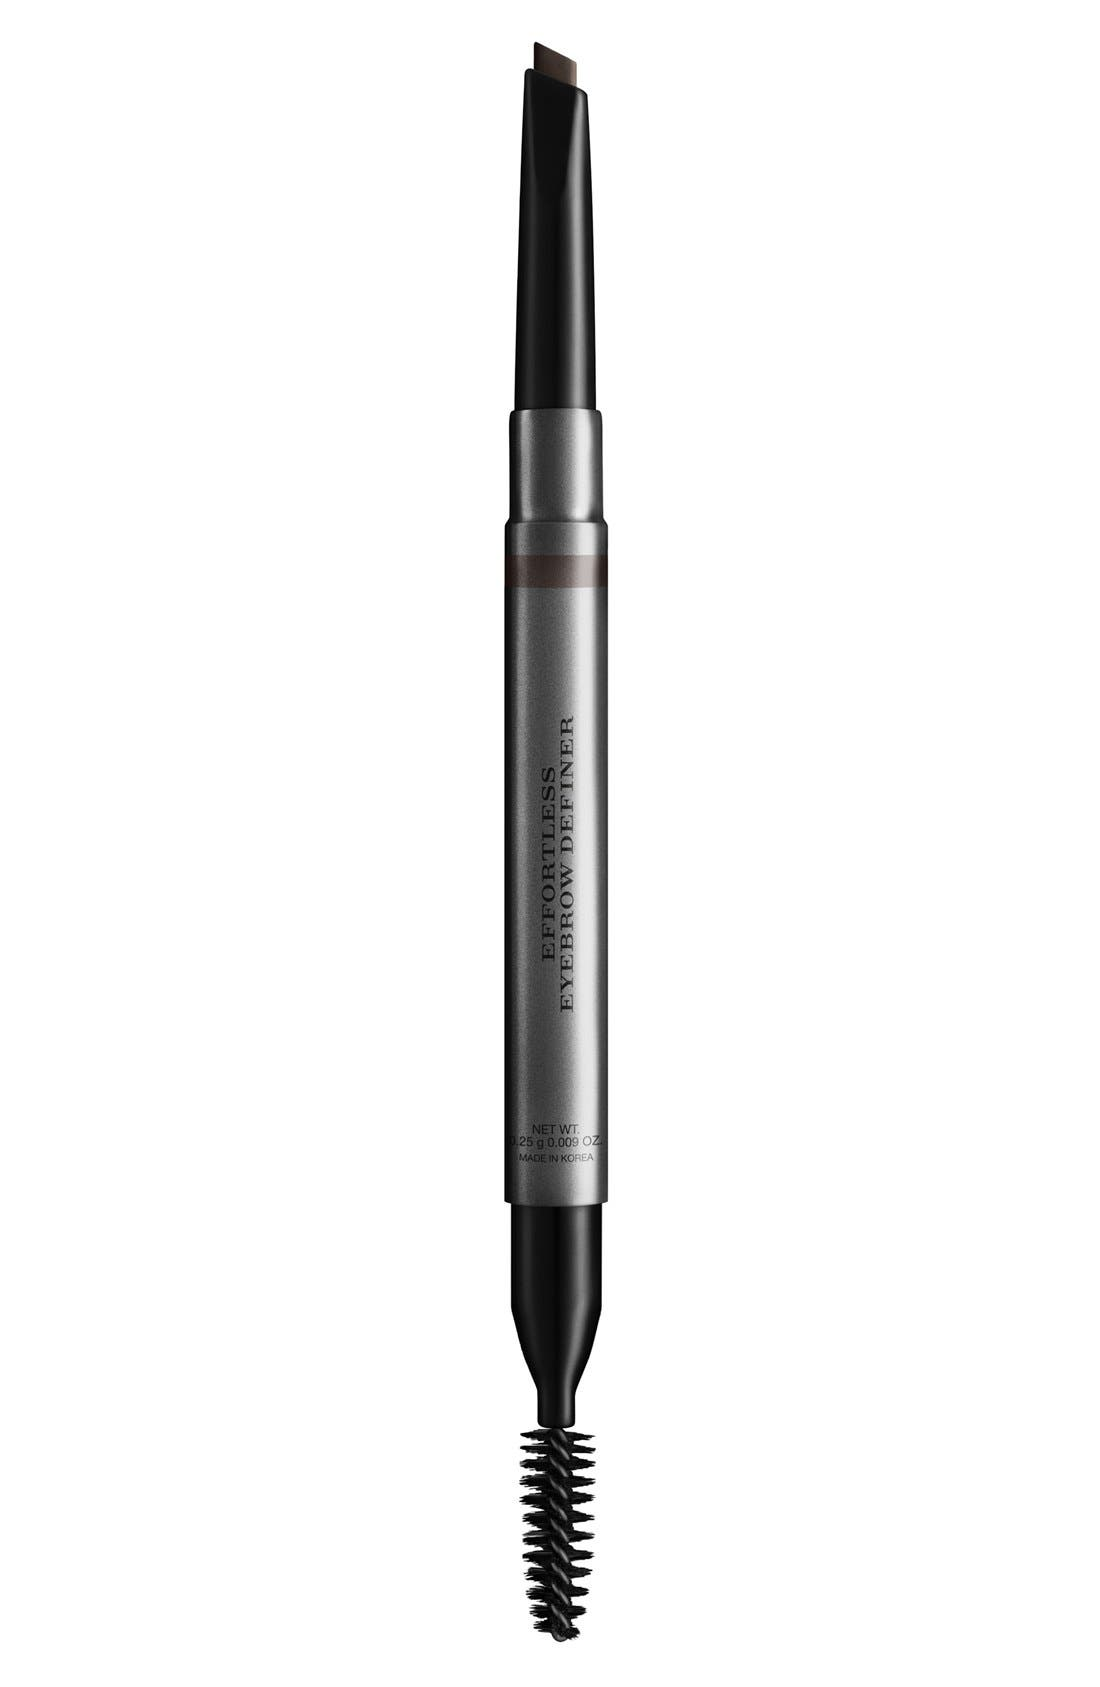 Burberry 'Effortless' Brow Definer